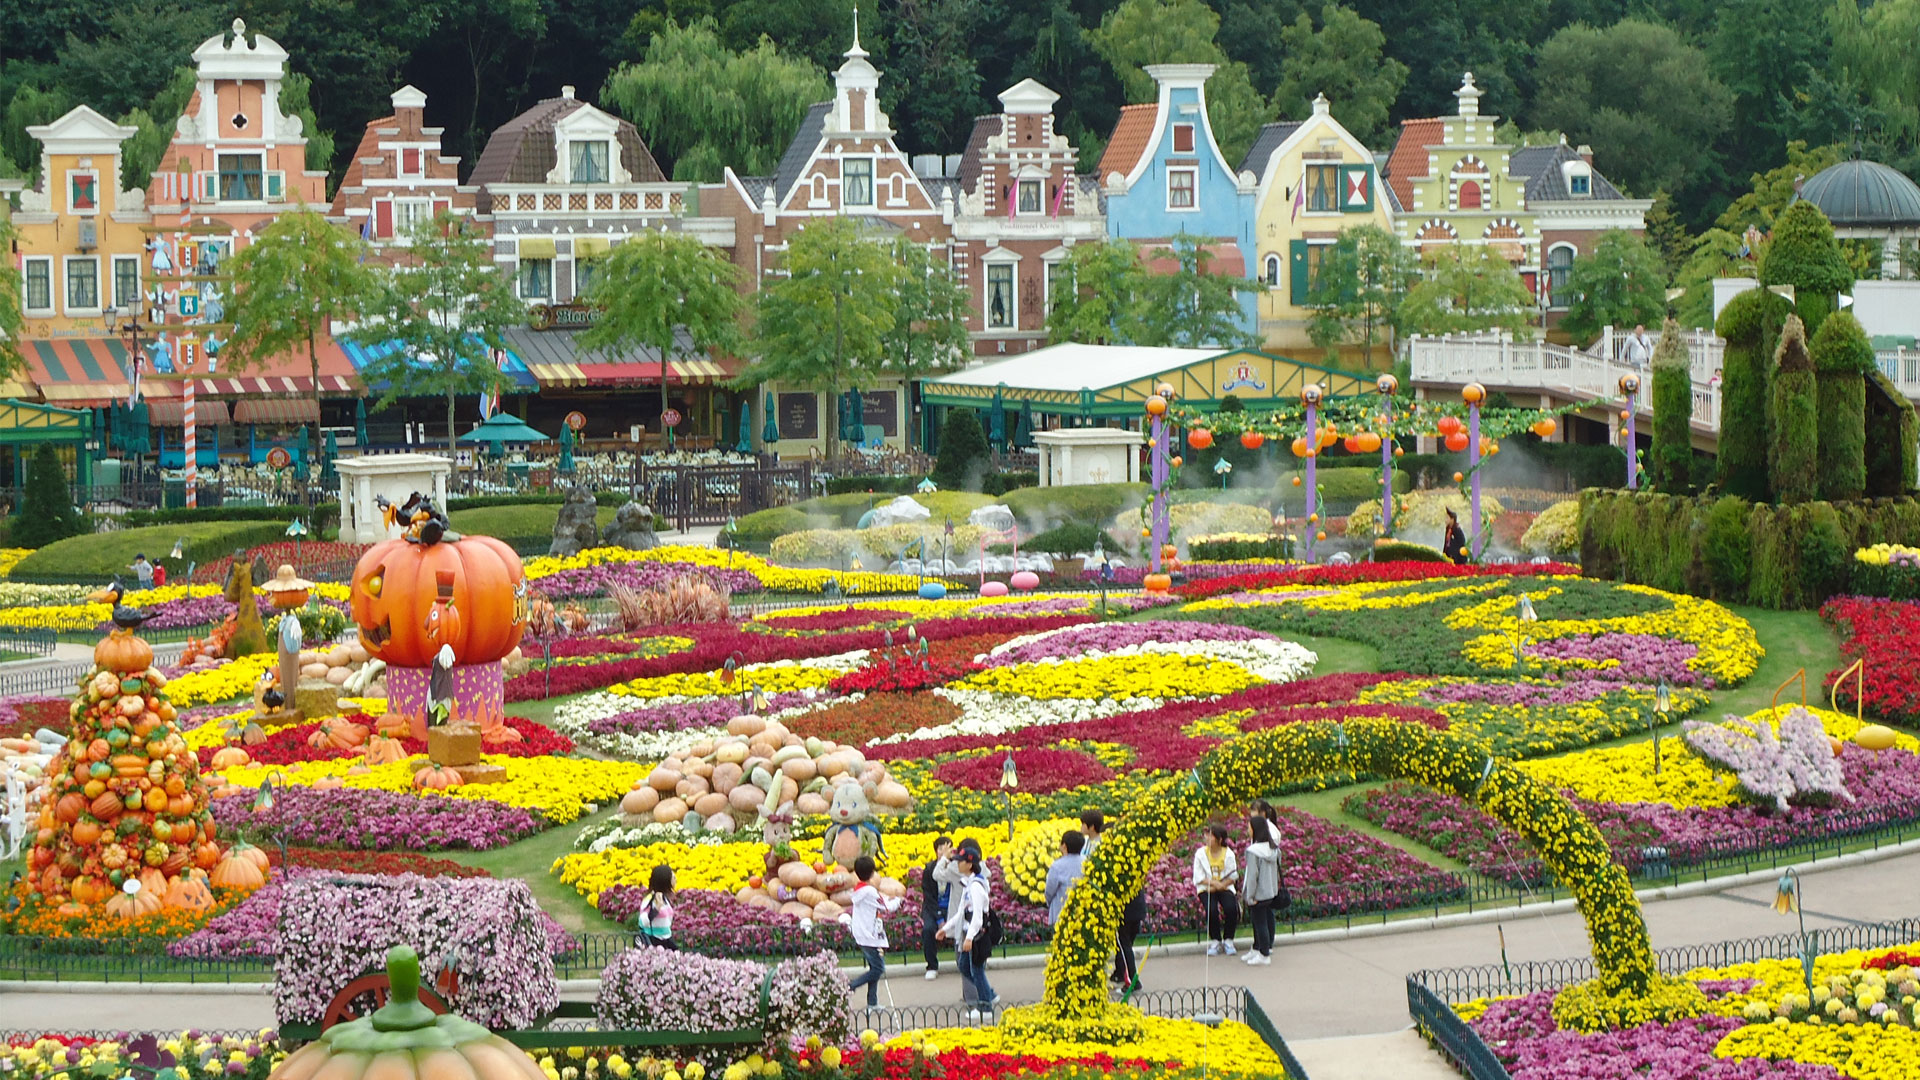 Samsung's Everland theme park is about an hour outside of Seoul.